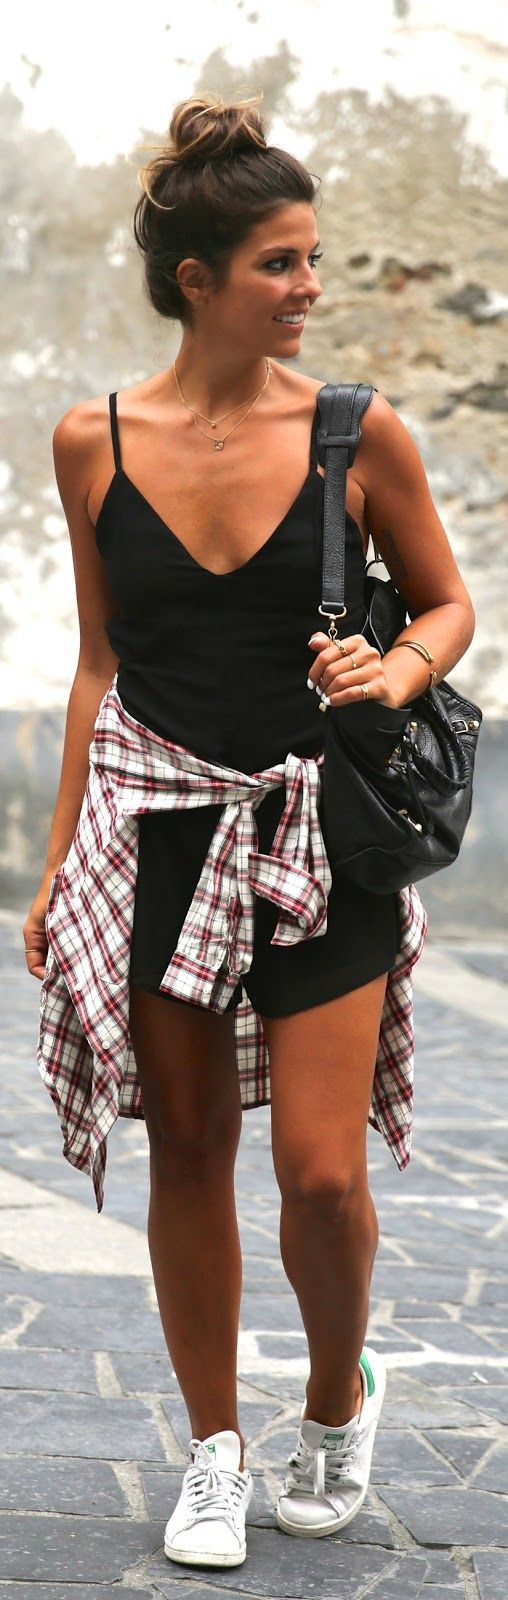 Daily New Fashion : Best Street Fashion Inspiration And Looks #streetstyle